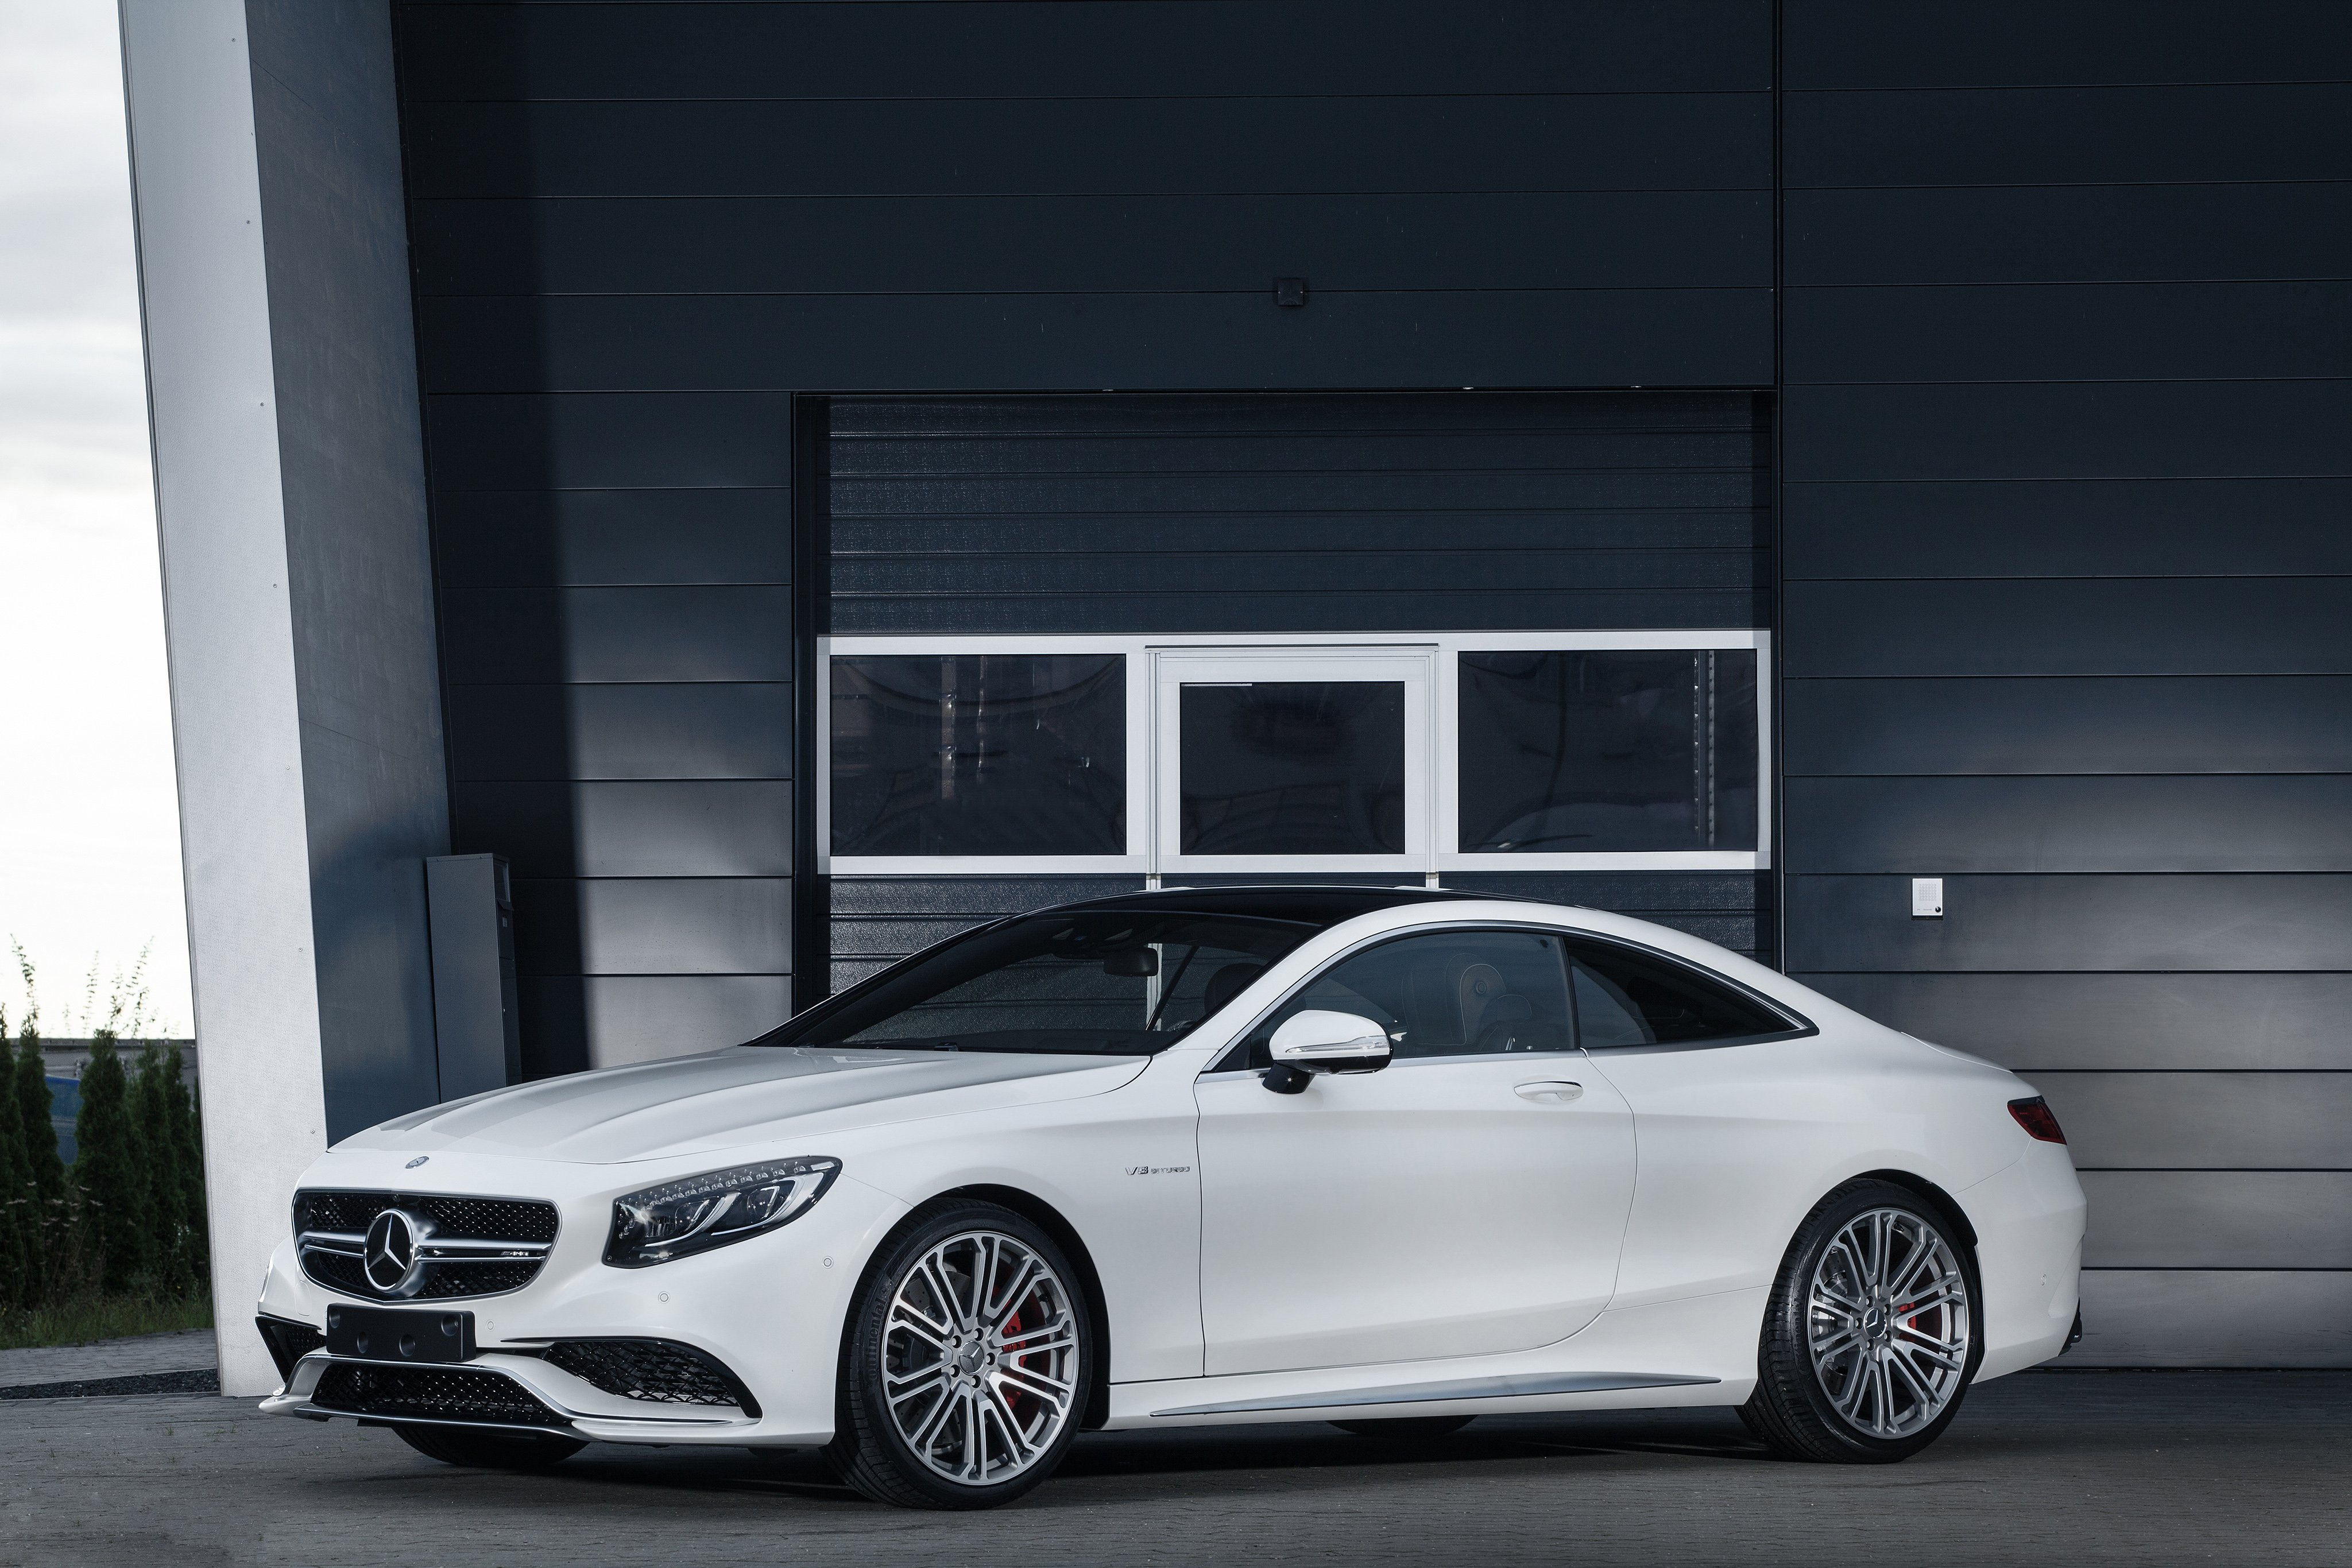 S 63 Amg Wallpaper: 2014 IMSA Mercedes Benz S63 AMG Coupe (DA217) Luxury